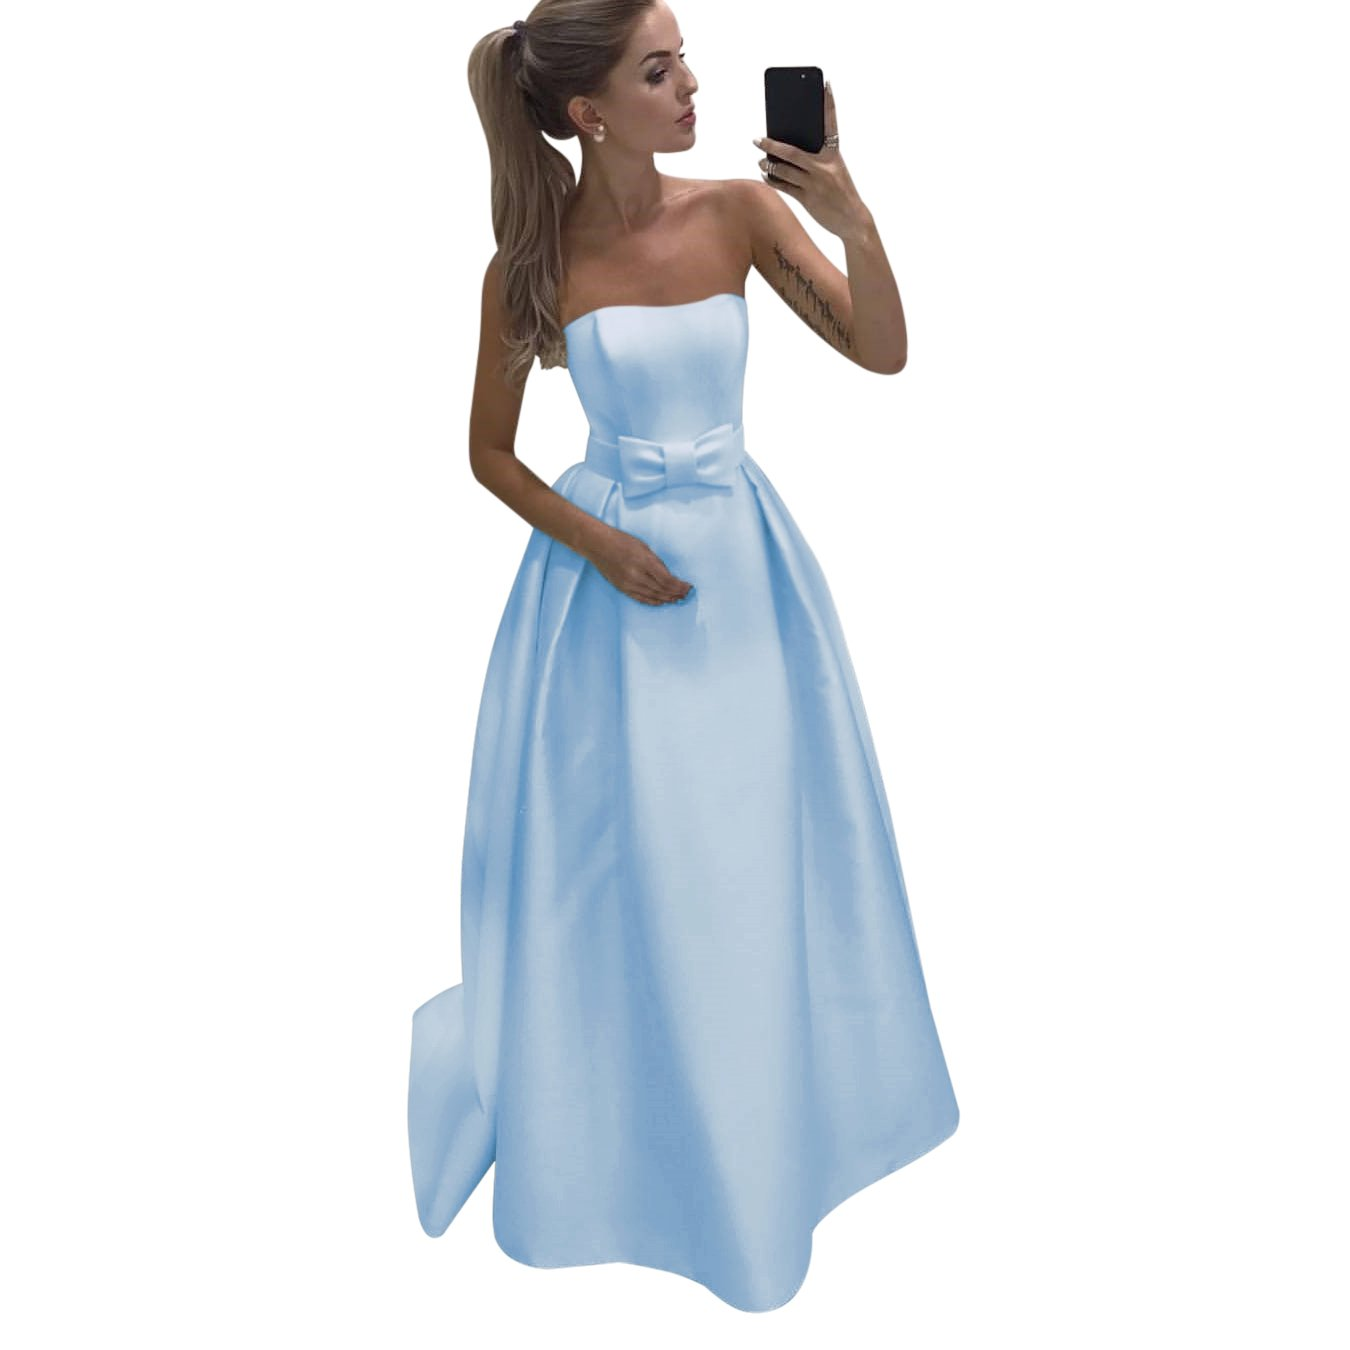 36269f417aa6 Harsuccting Strapless Backless Bow Tie Long Satin Prom Dress Bridesmaid  Dress at Amazon Women's Clothing store: